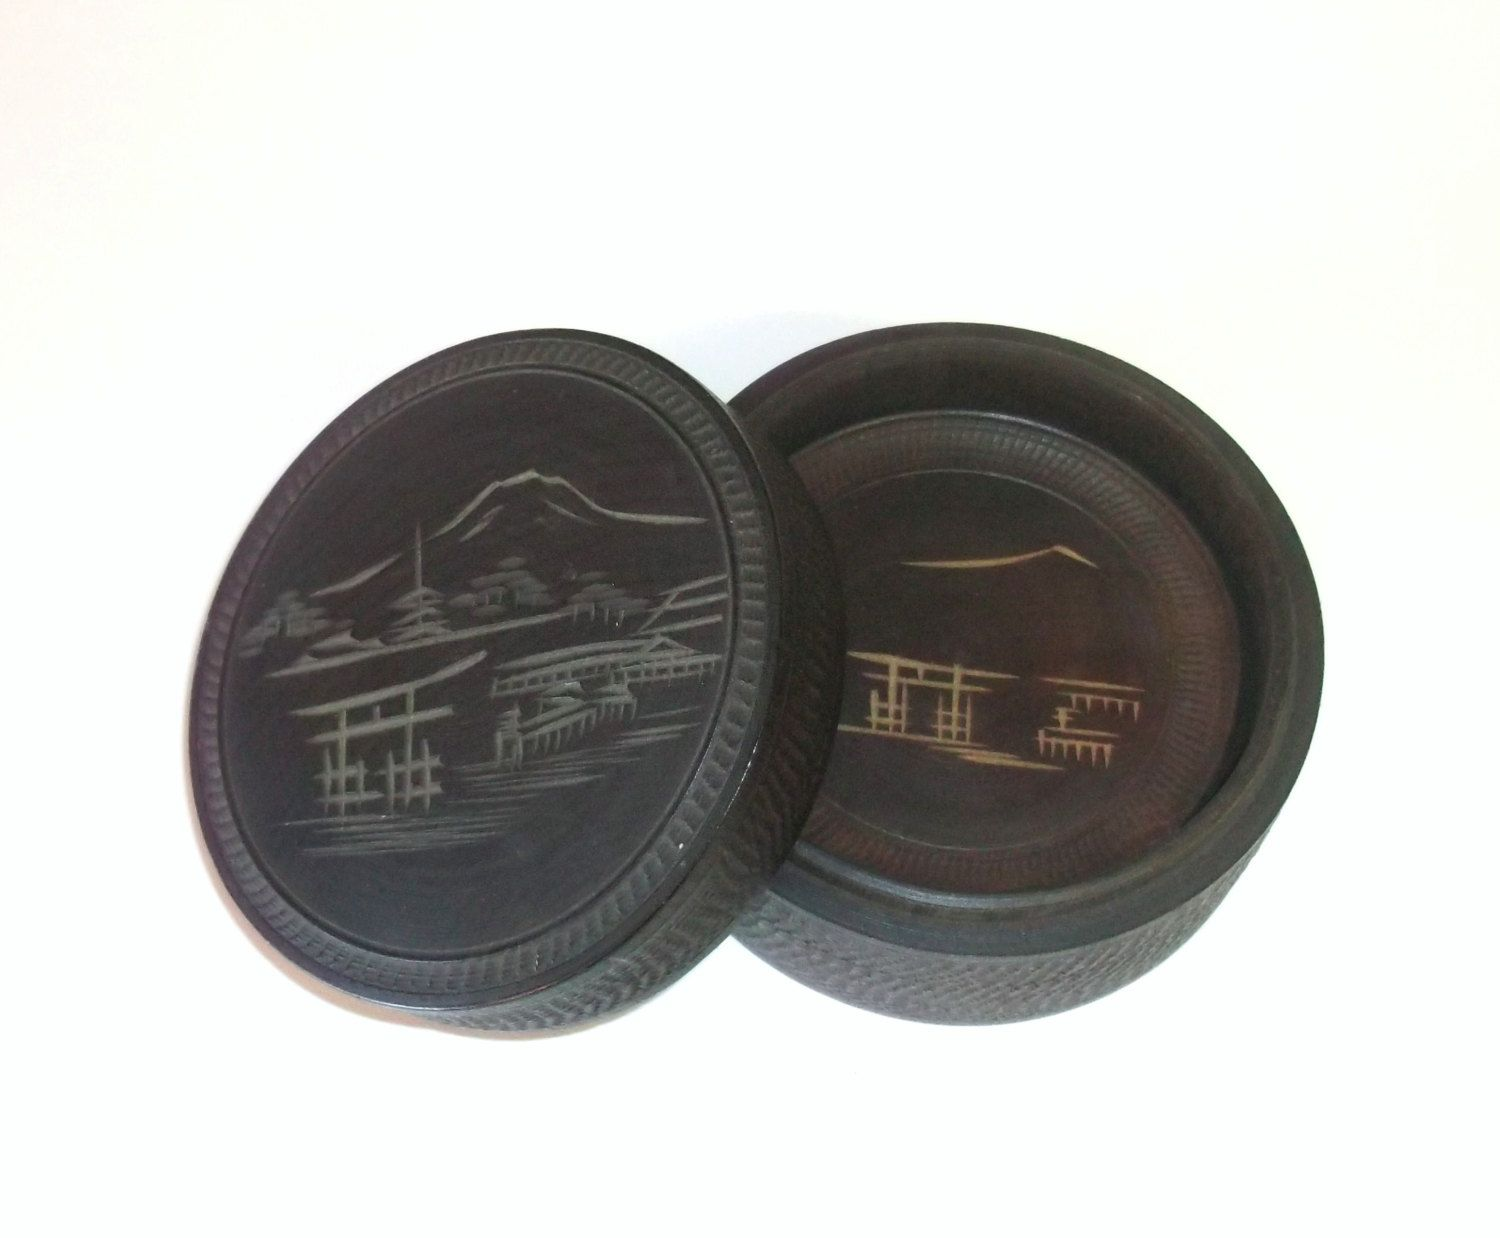 Vintage Round Wood Coasters In Wooden Box Made In Japan Drink Coasters 20 00 Via Etsy Wood Coasters Wooden Boxes Traditional Japanese Architecture